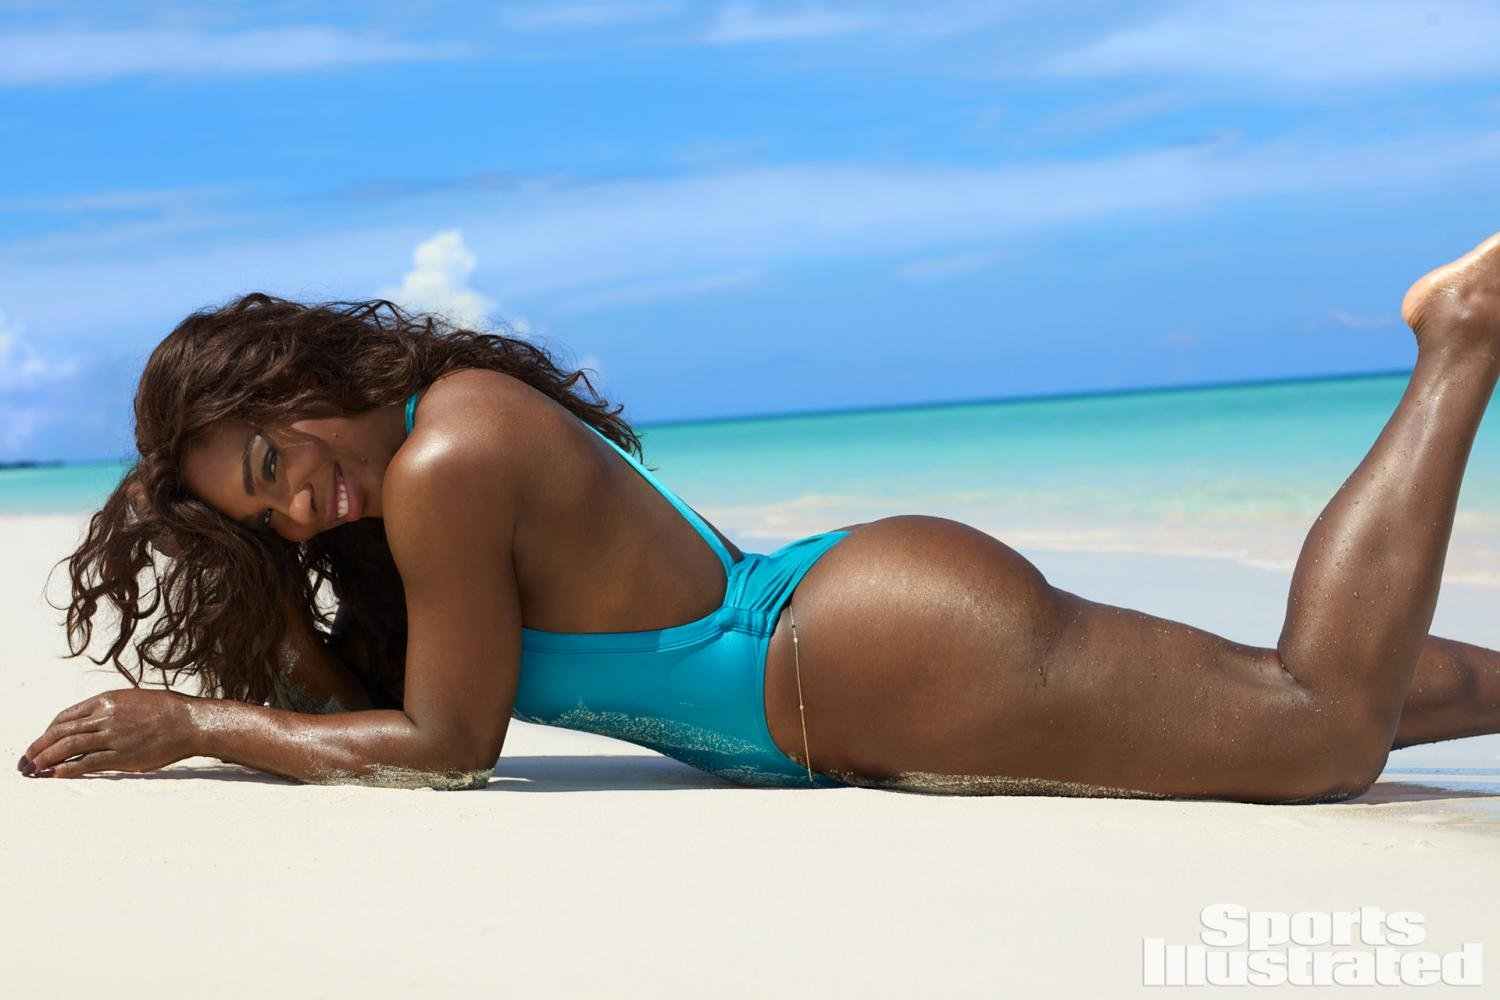 Sexy pics of serena williams